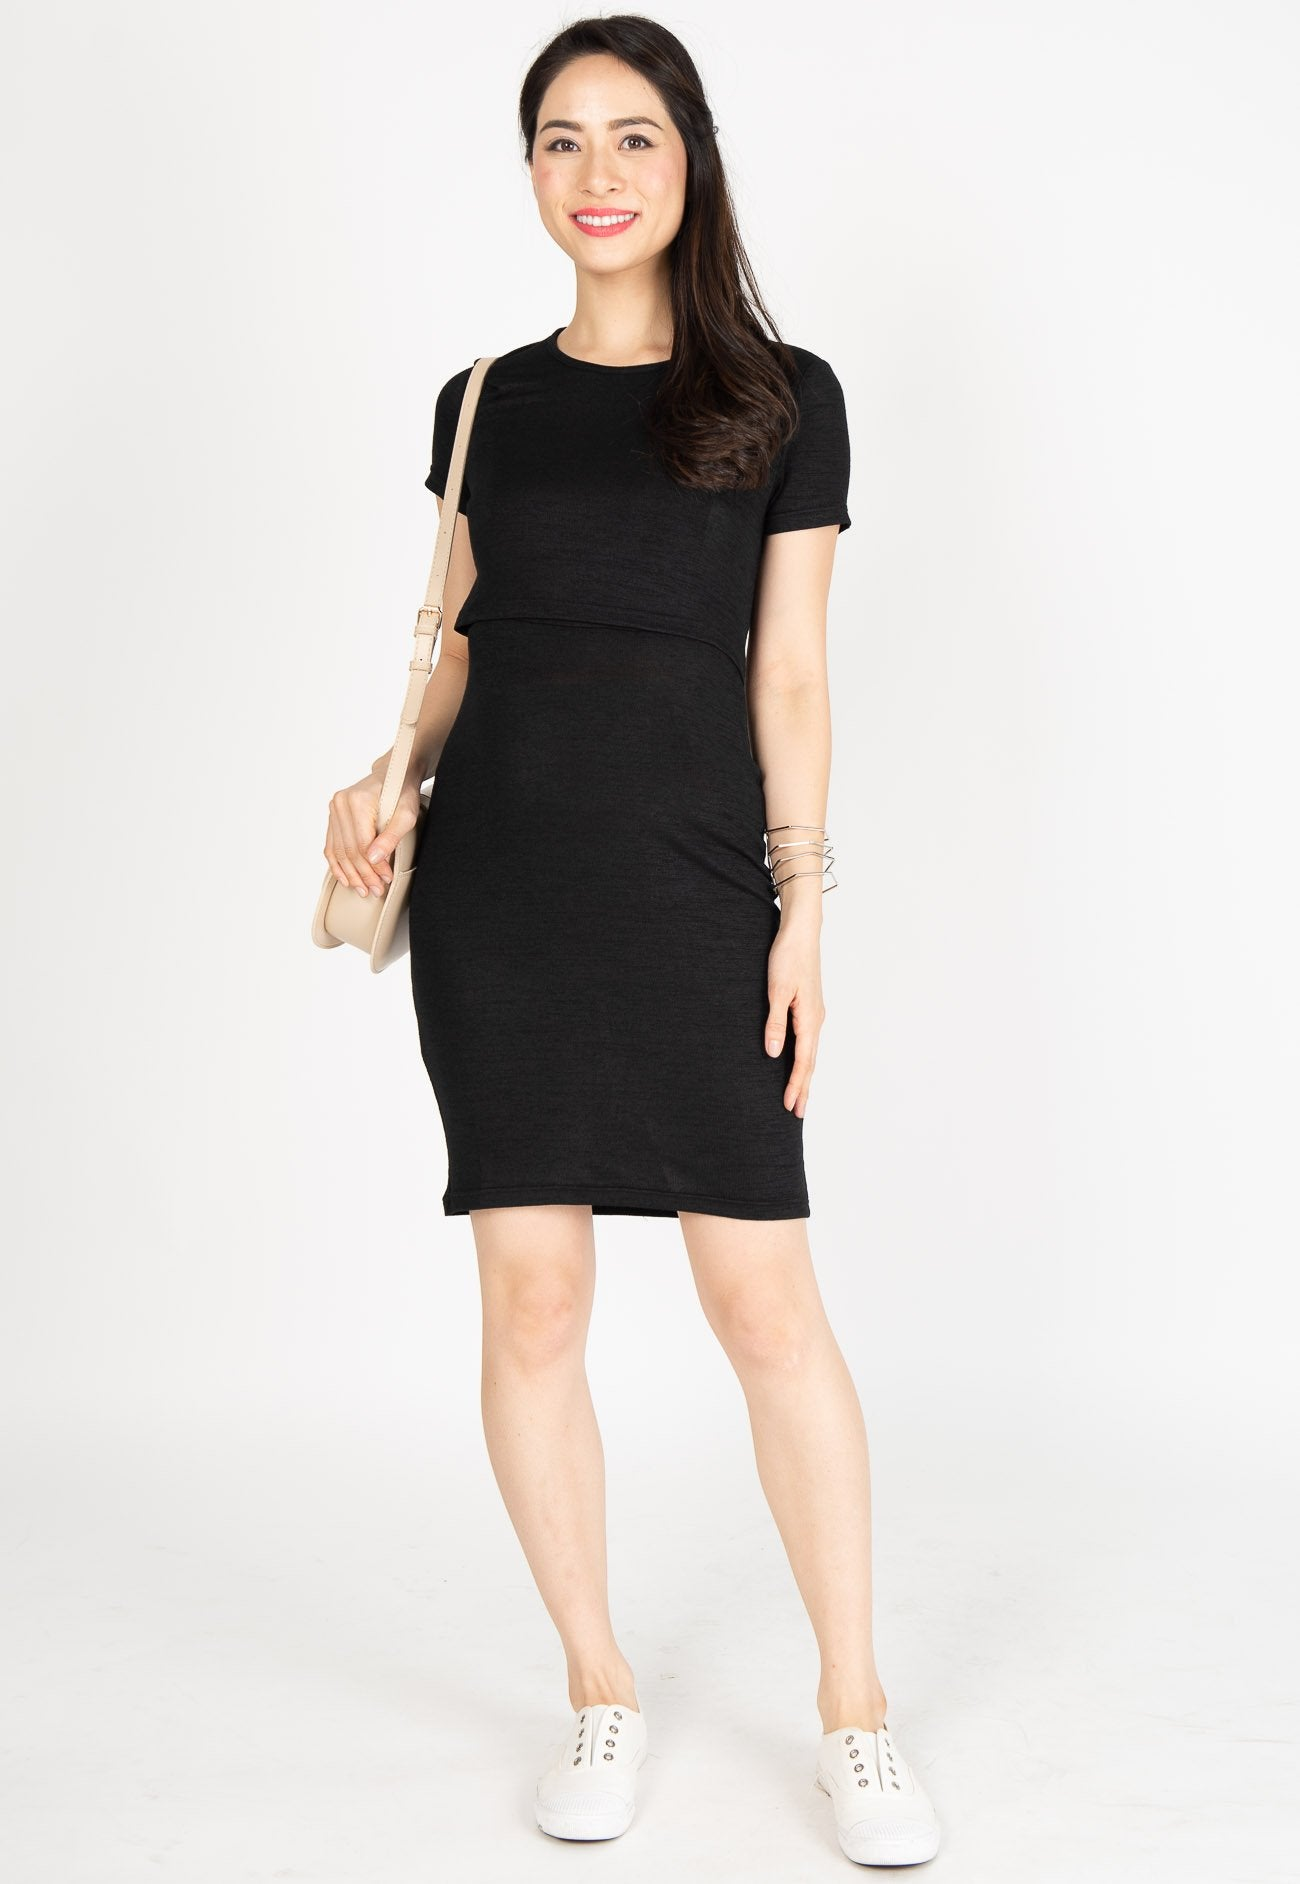 Mothercot Ever Comfort Nursing Dress in Black  by JumpEatCry - Maternity and nursing wear